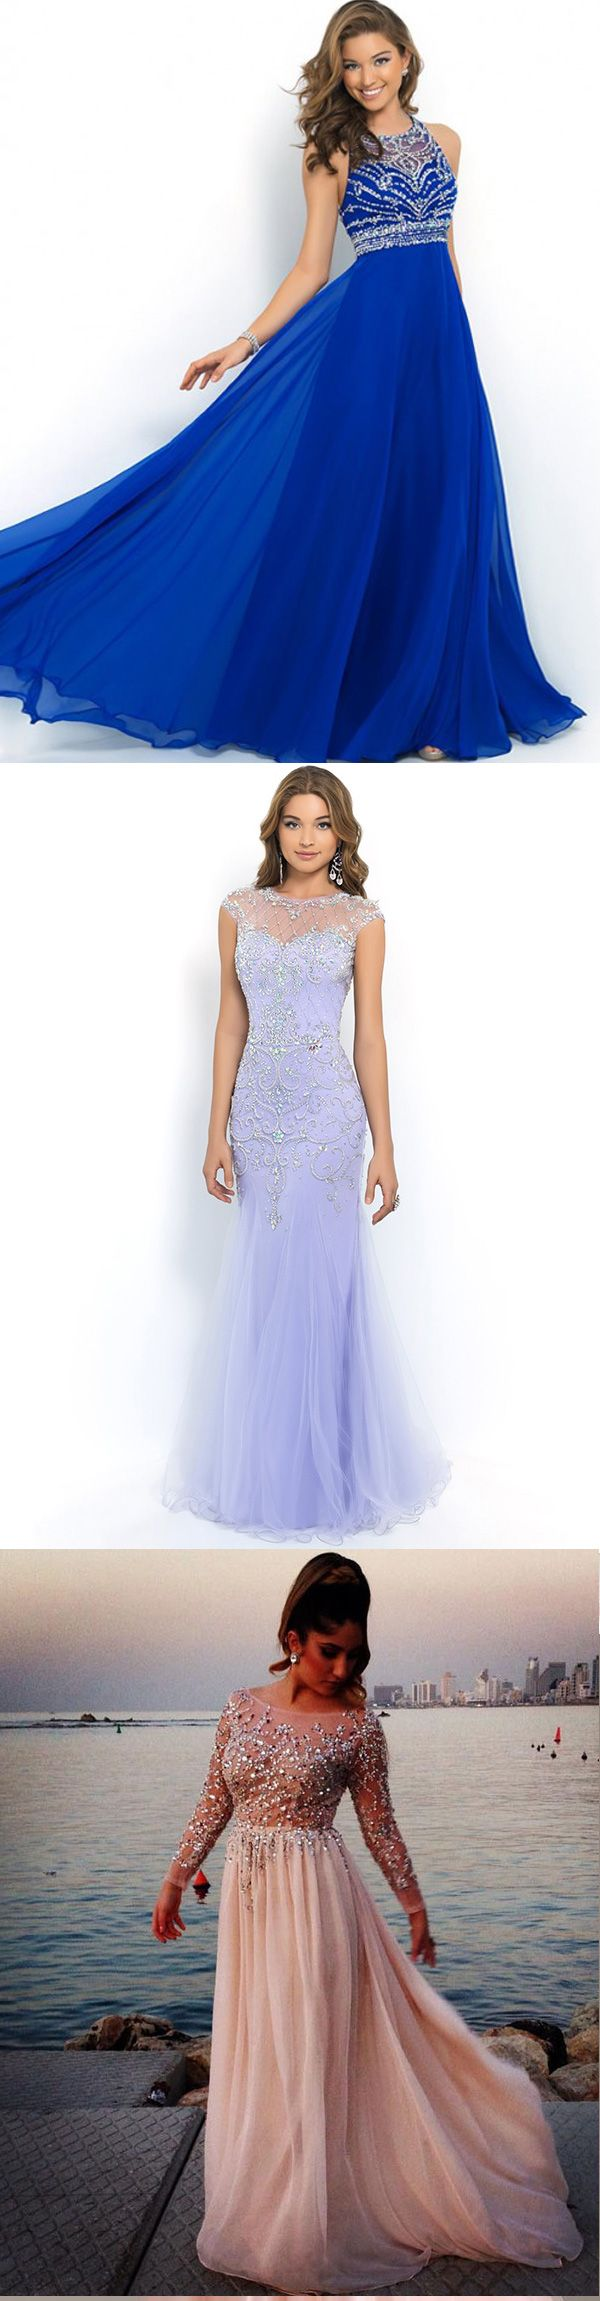 Long Prom Dresses 2016 Sale OMG I LOVE THE SECOND ONE!!!!